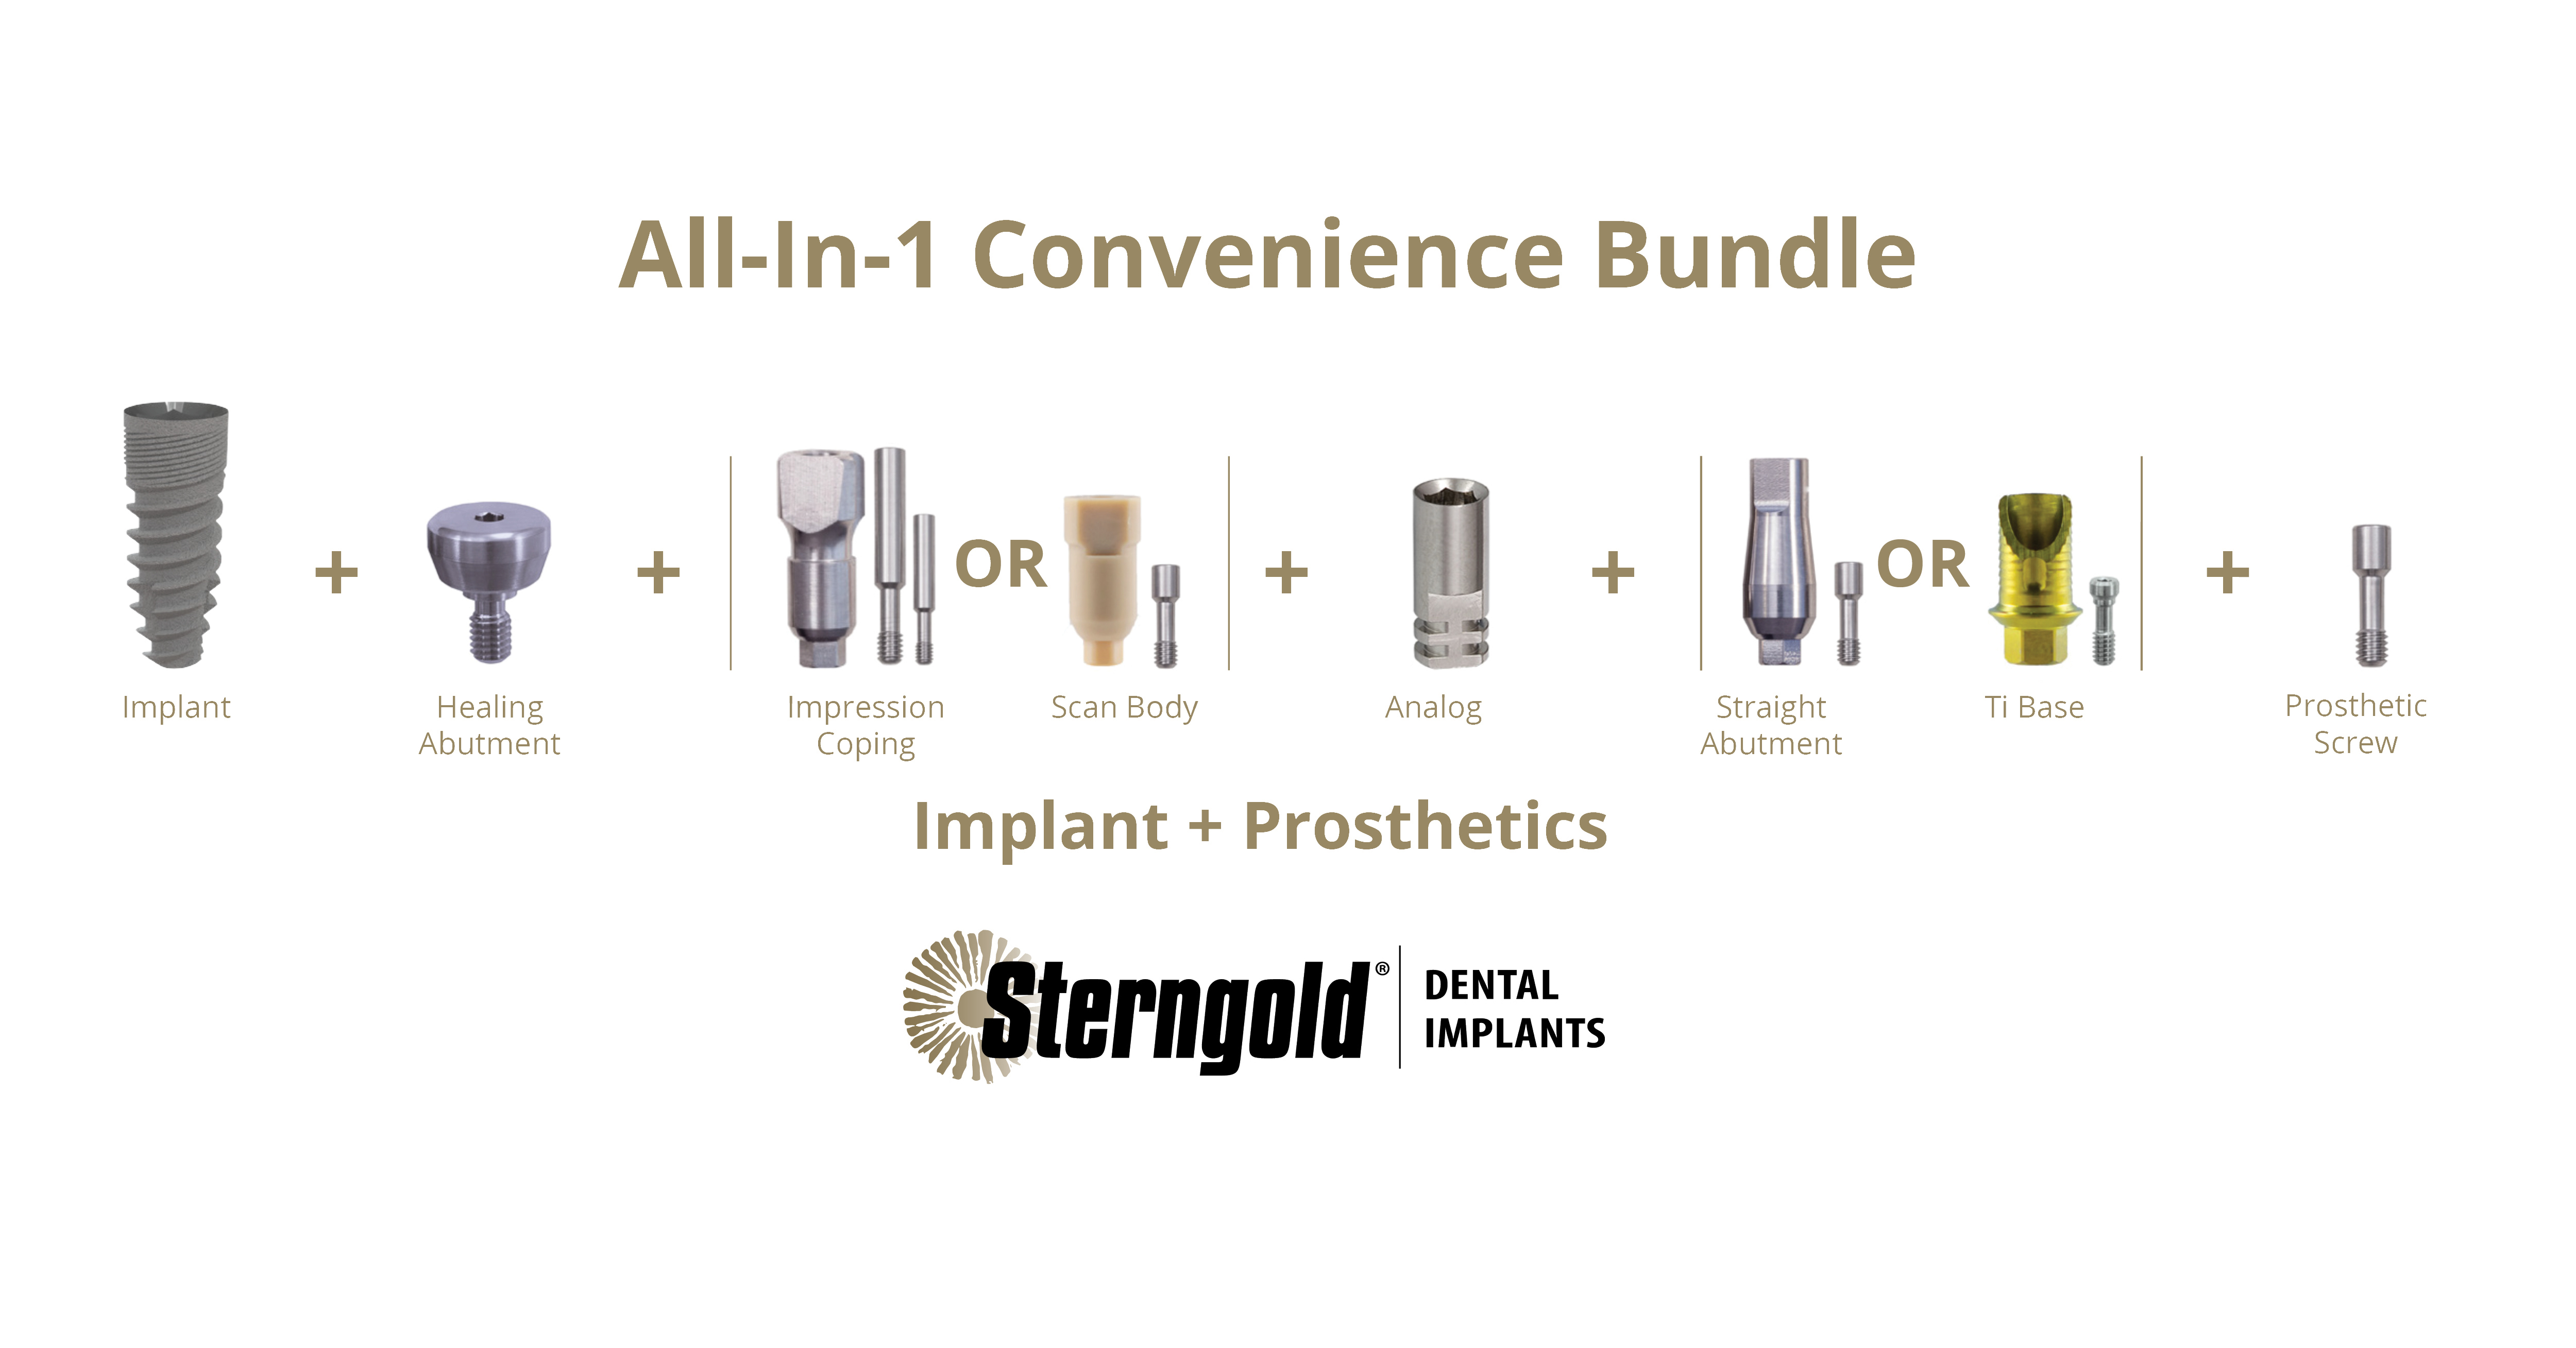 All-in-1 Dental Implant Bundle Delivers with Restorative Components in one Low, Flat Fee